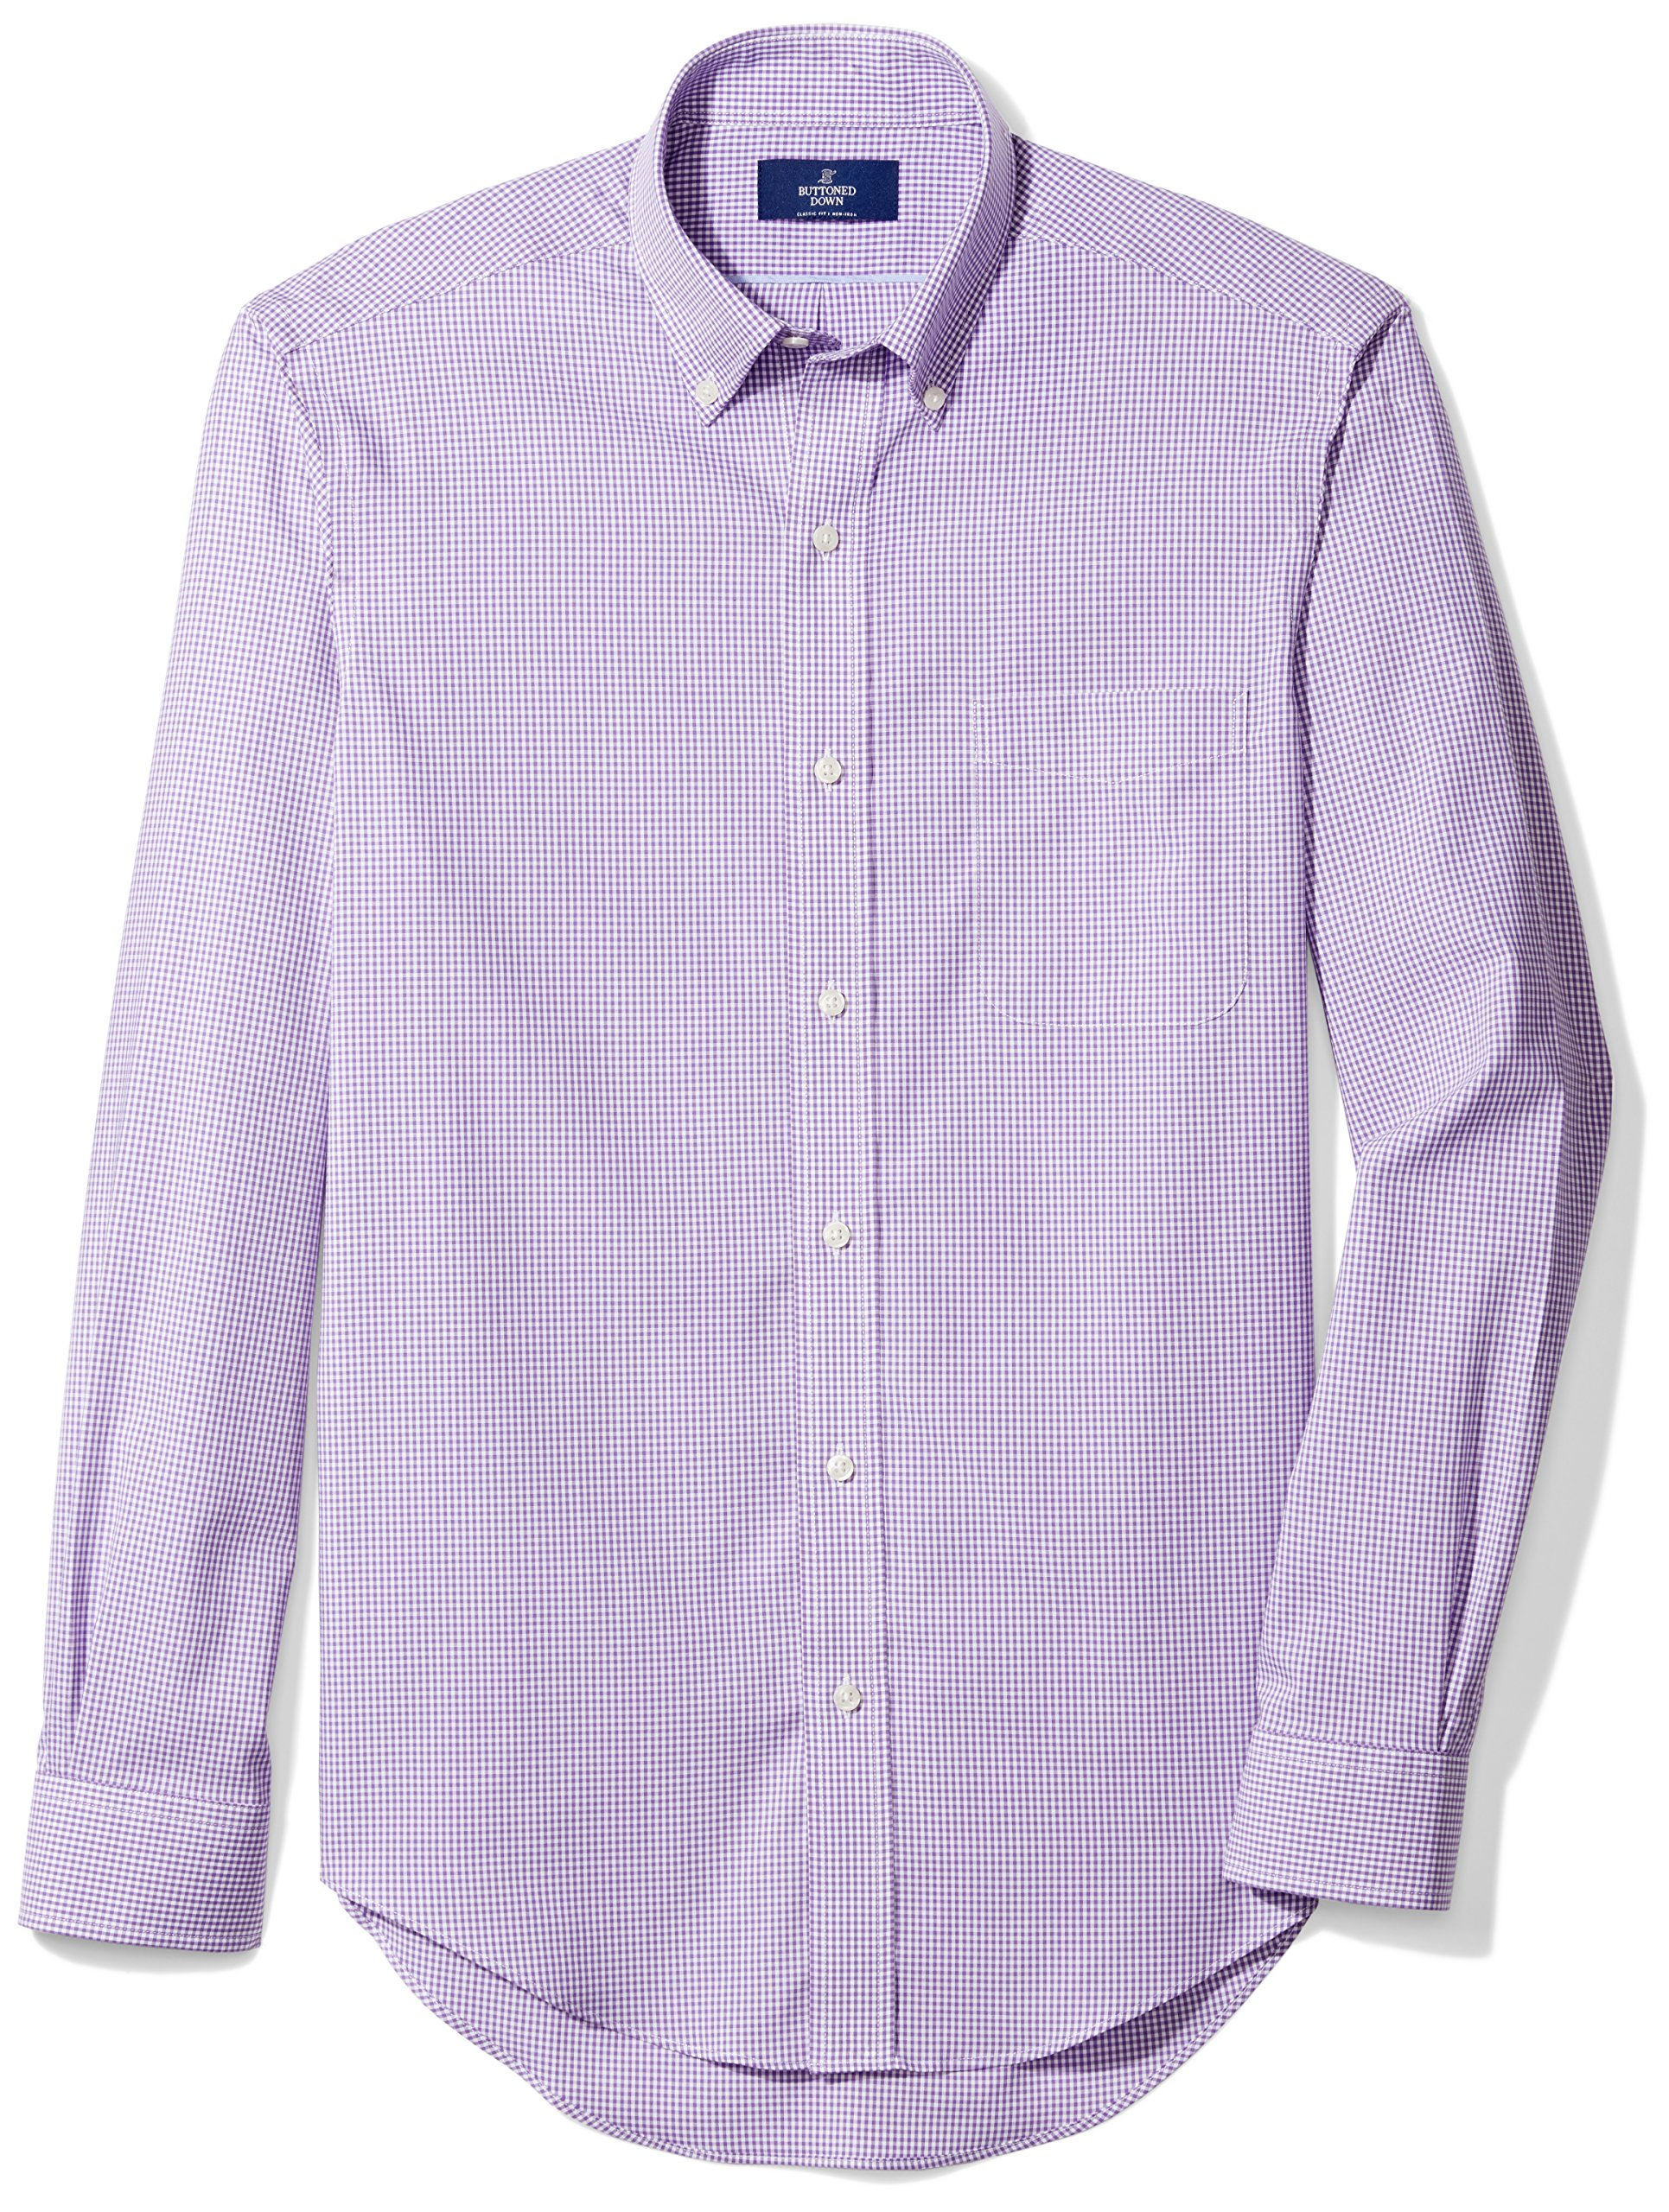 Buttoned Down Men's Classic Fit Button-Collar Non-Iron Dress Shirt, Purple Small Gingham, 16.5'' Neck 36'' Sleeve by Buttoned Down (Image #3)